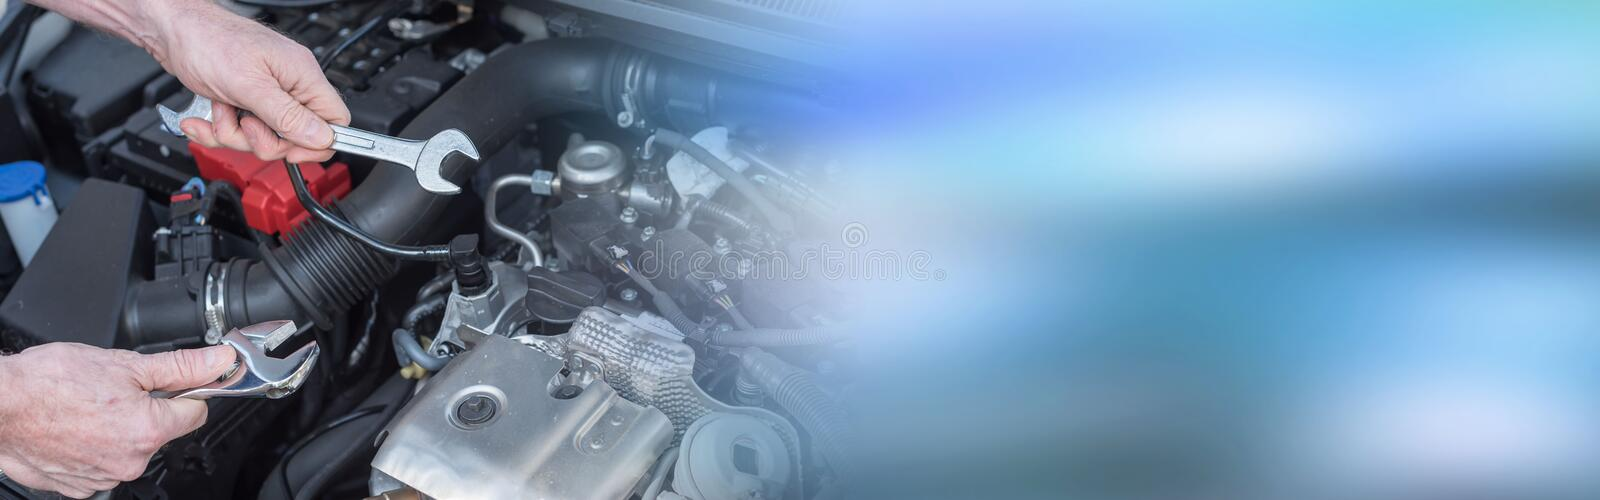 Hands of car mechanic working on car engine stock photos